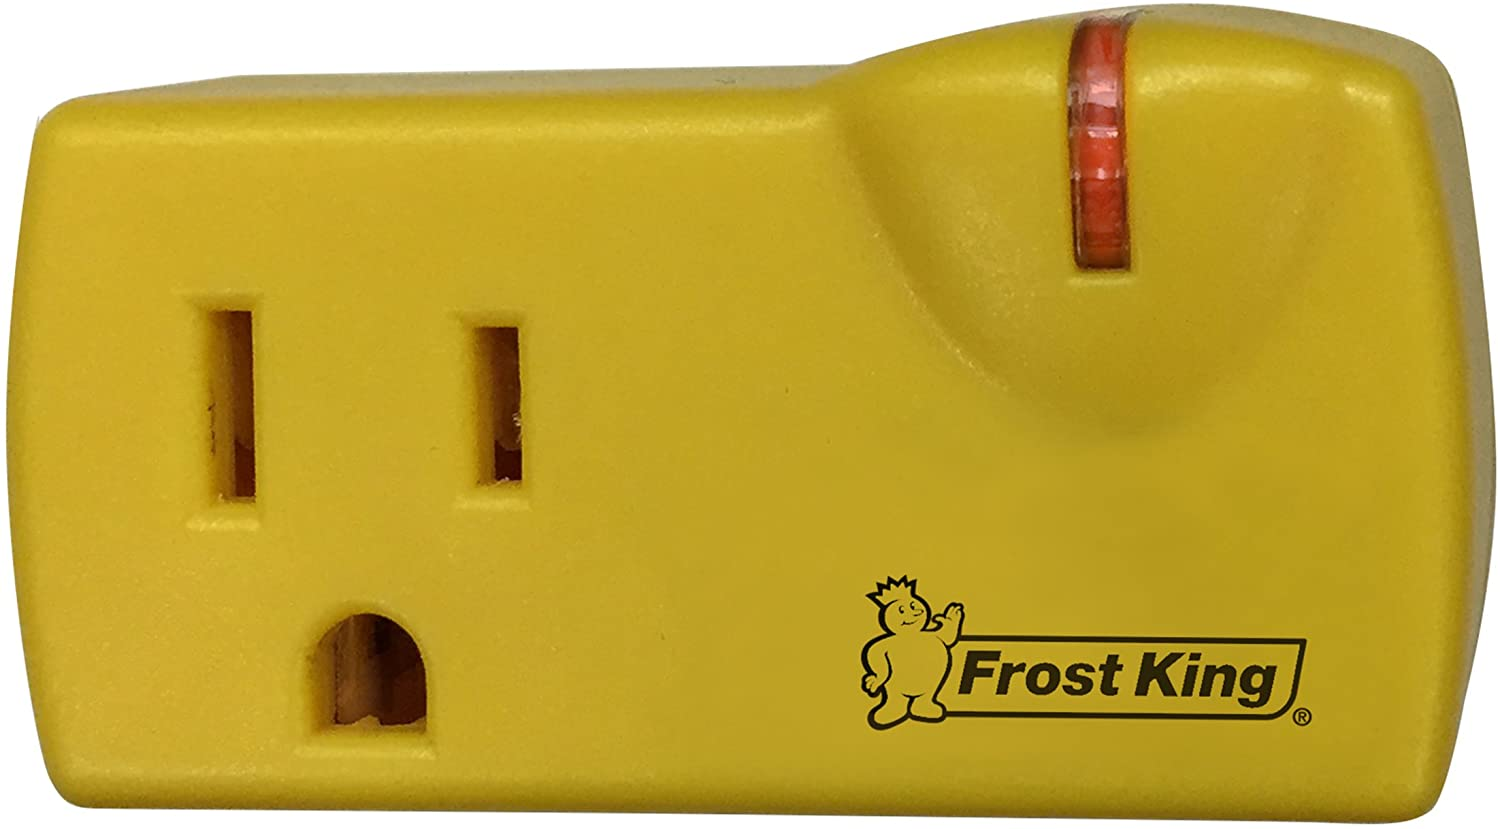 Frost King 099000 Self-Regulating Thermostat for Heat Cable Kits